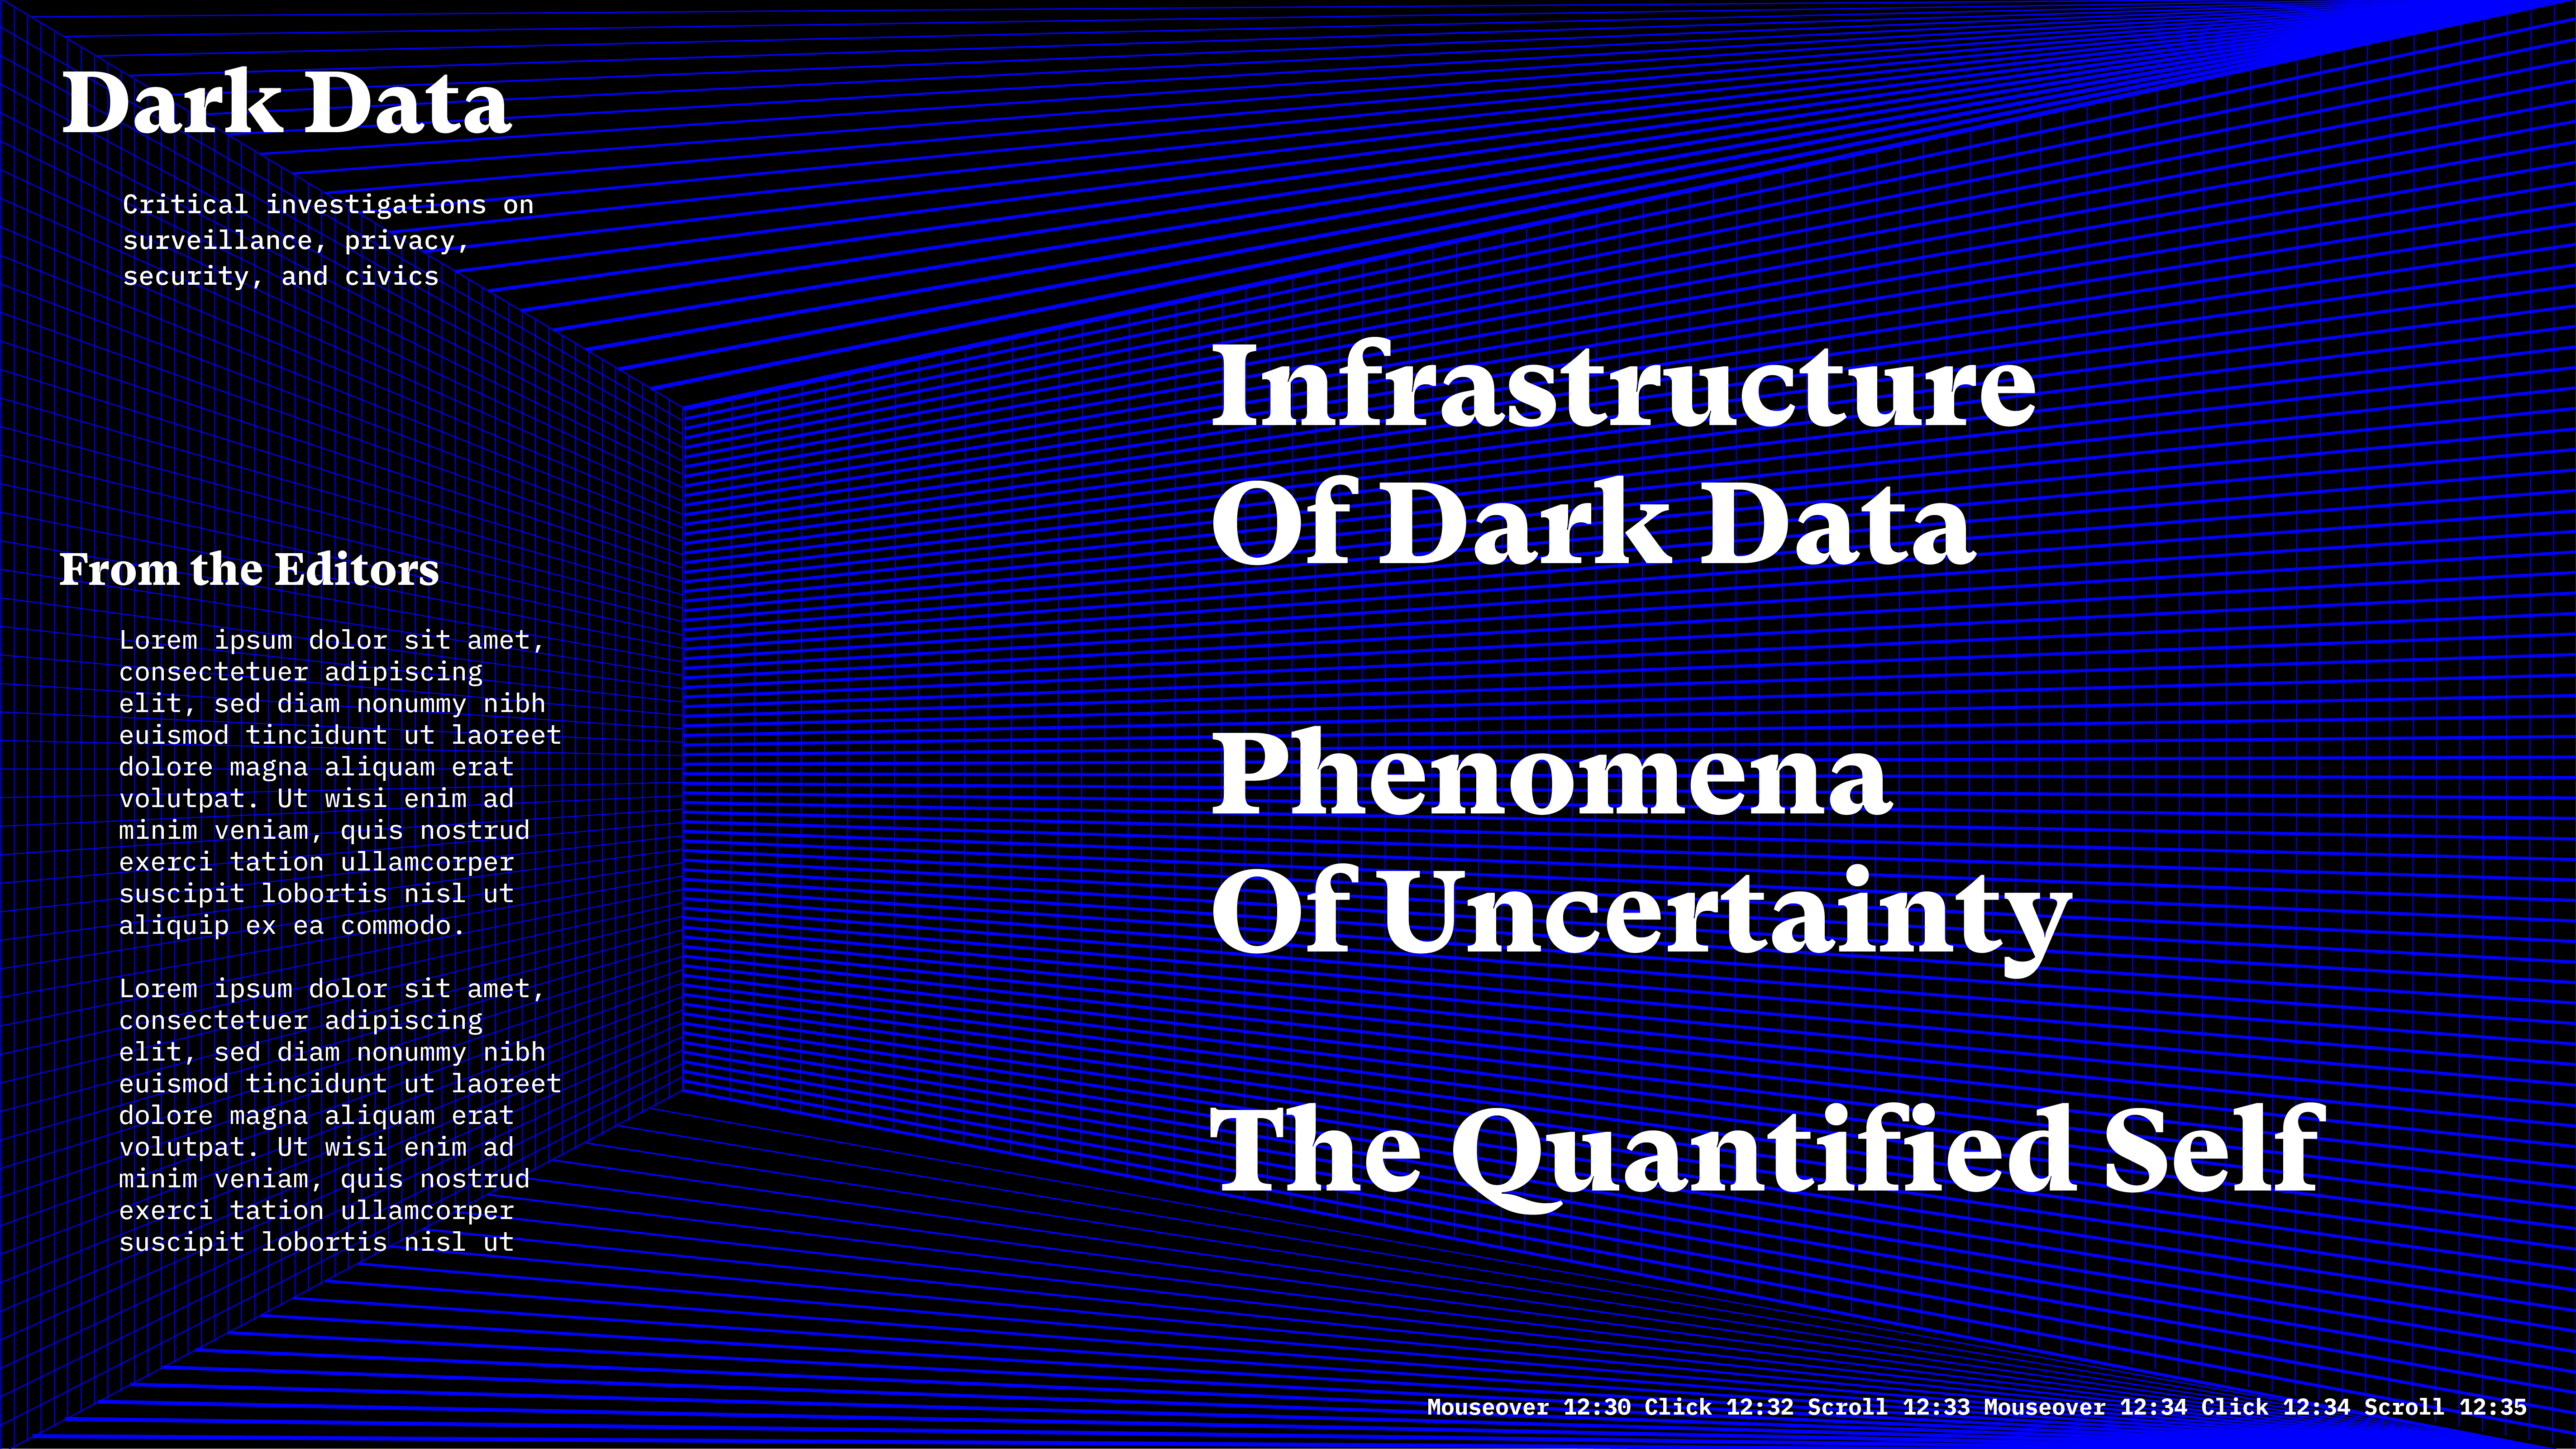 darkdata_publication_draft3-03